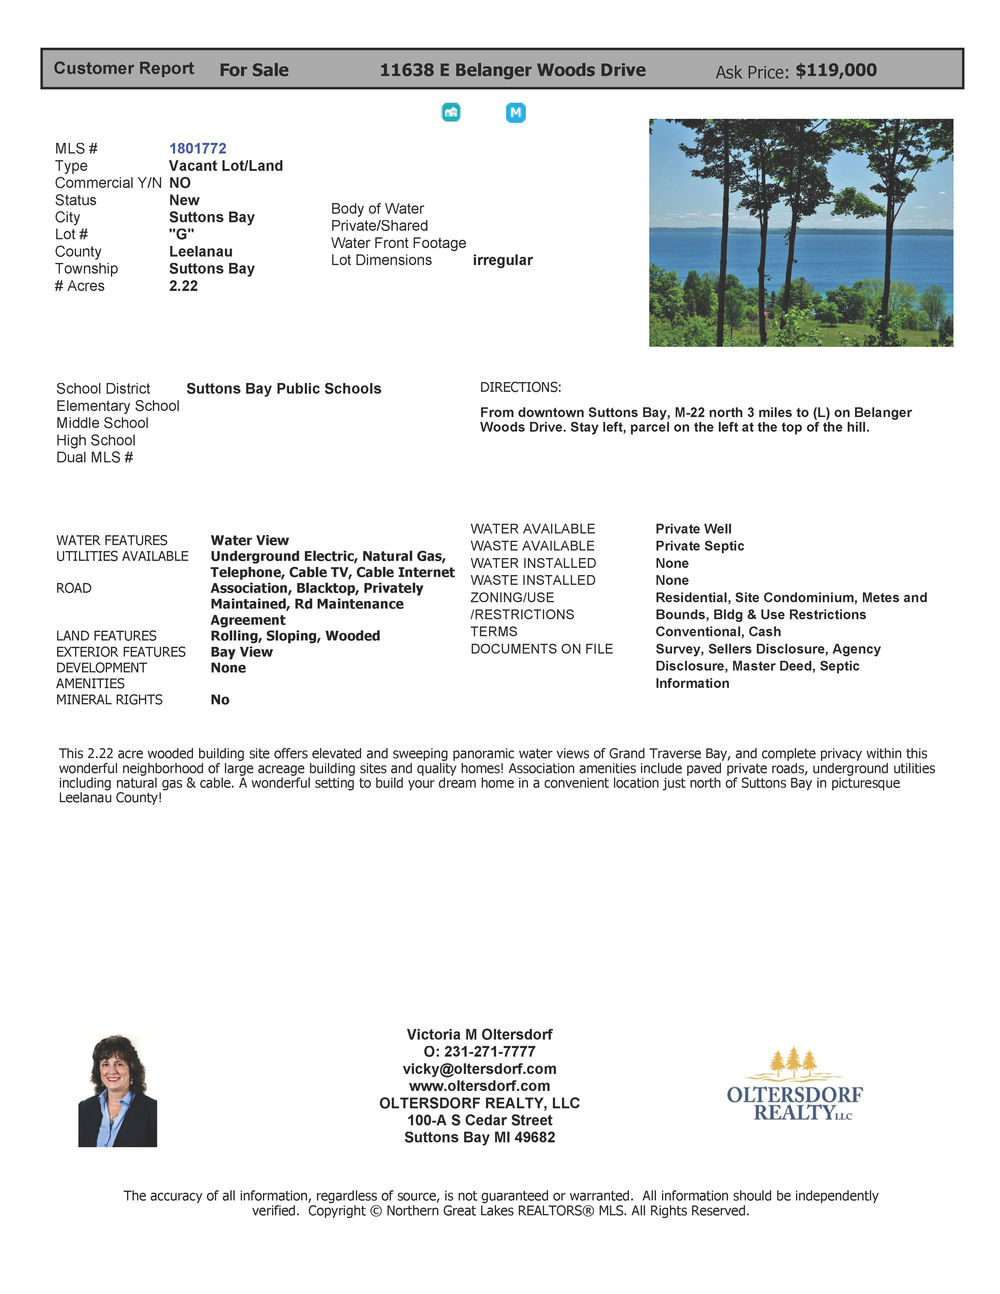 11638 E Belanger Woods Drive, Suttons Bay, MI, Leelanau County vacant land with water views of Grand traverse Bay, for sale by Oltersdorf Realty LLC, Leelanau County Realtors Vicky & Jonathan Oltersdorf marketing packe.jpg